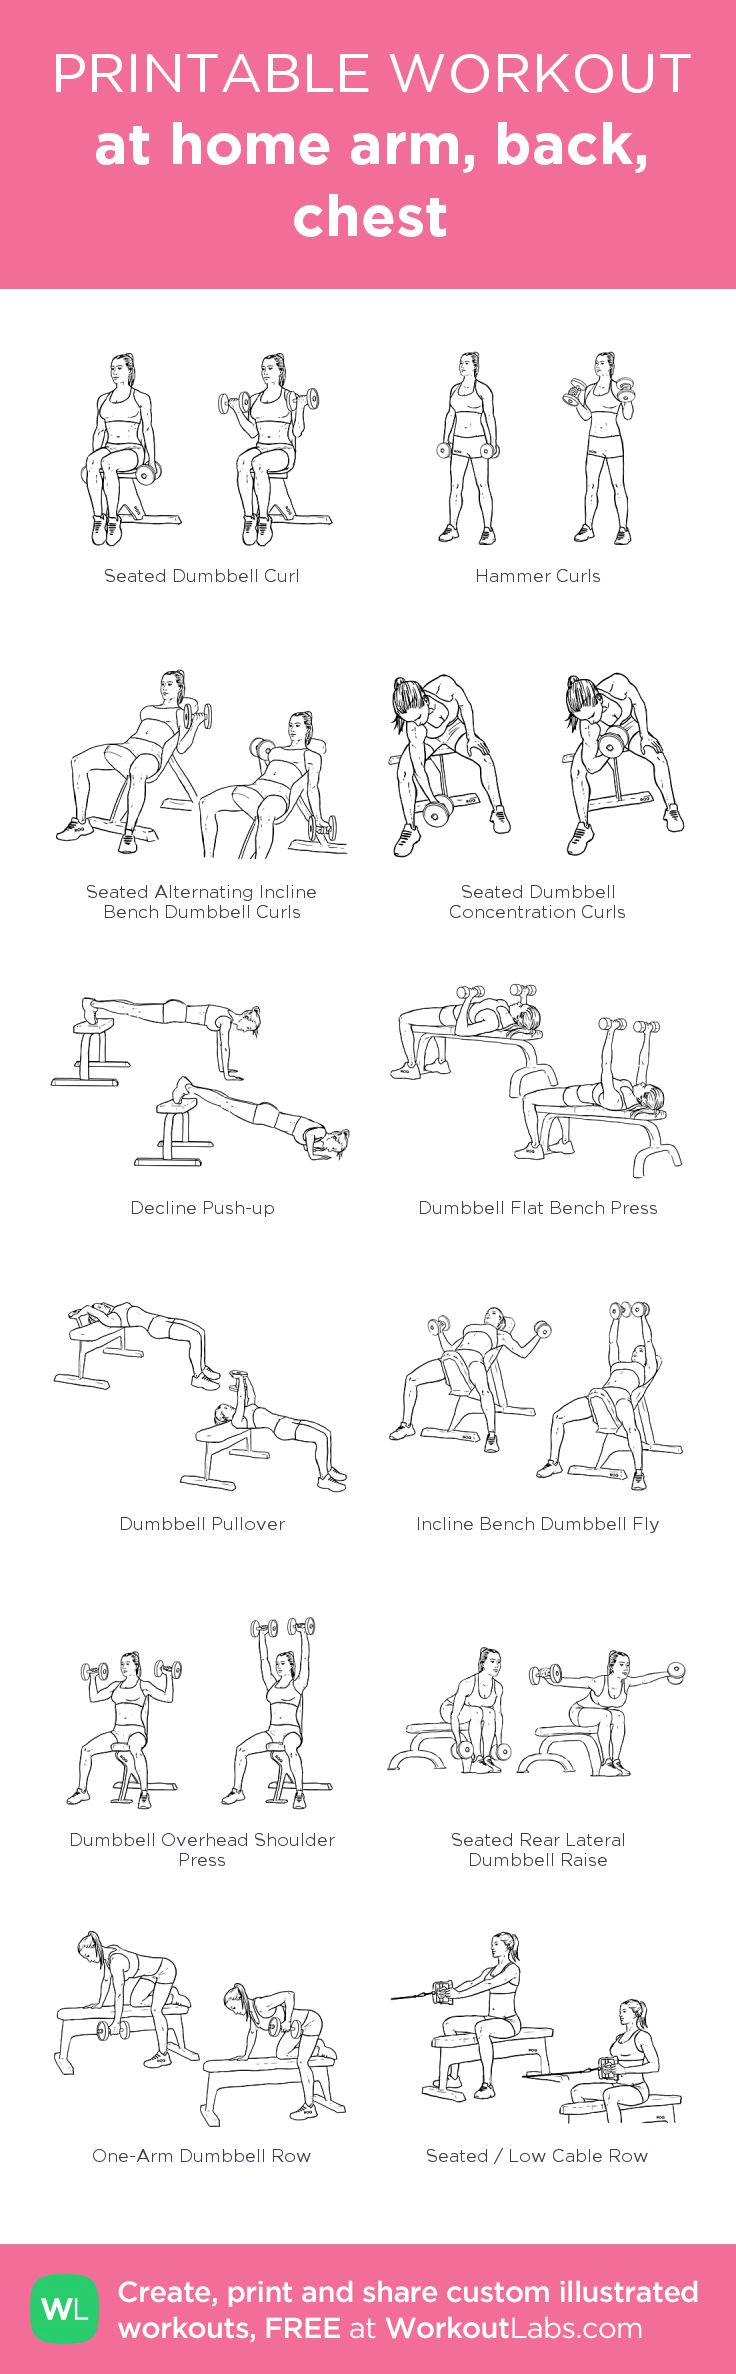 at home arm, back, chest: my visual workout created at WorkoutLabs.com • Click through to customize and download as a FREE PDF! #customworkout